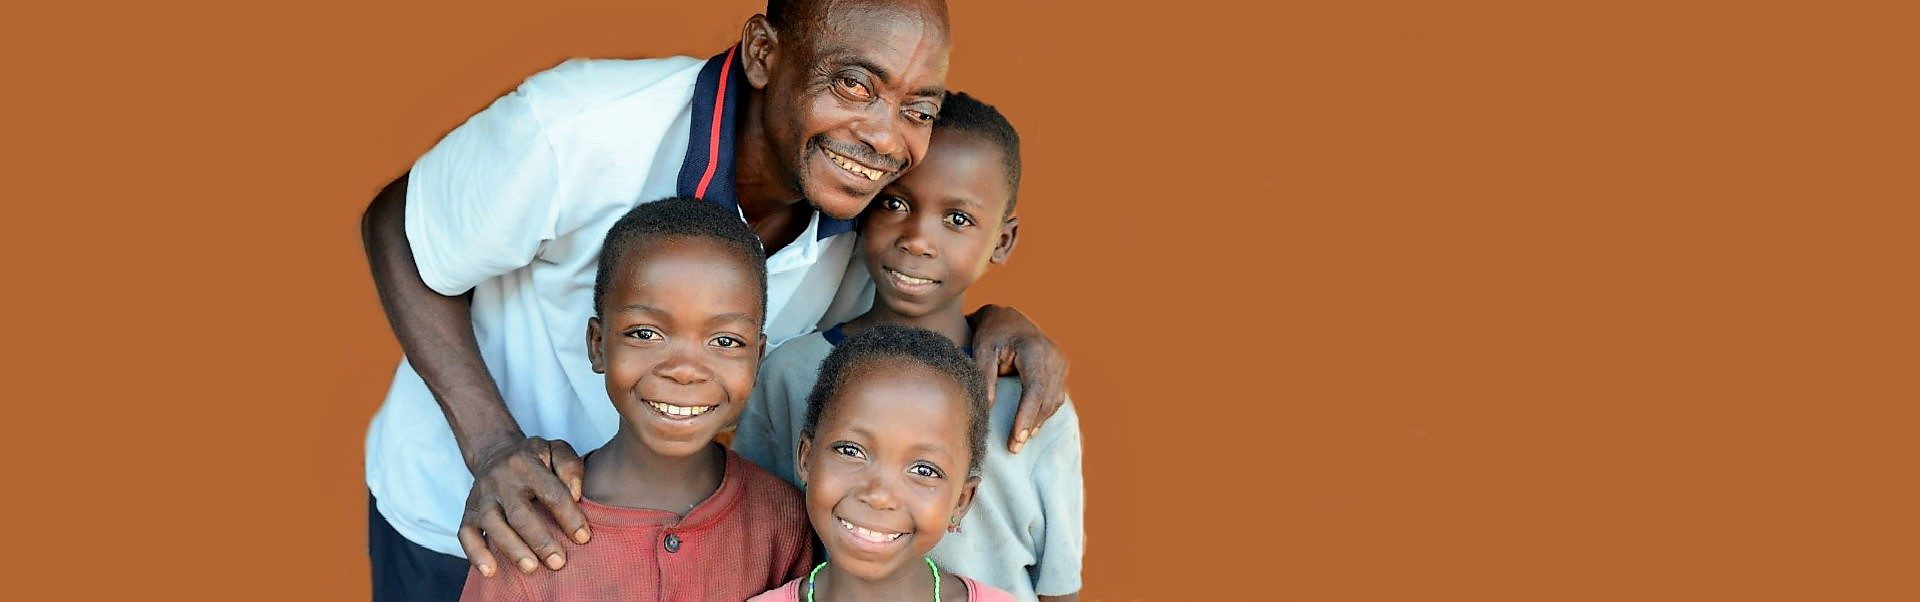 Vincent who suffers from River Blindness with his children.